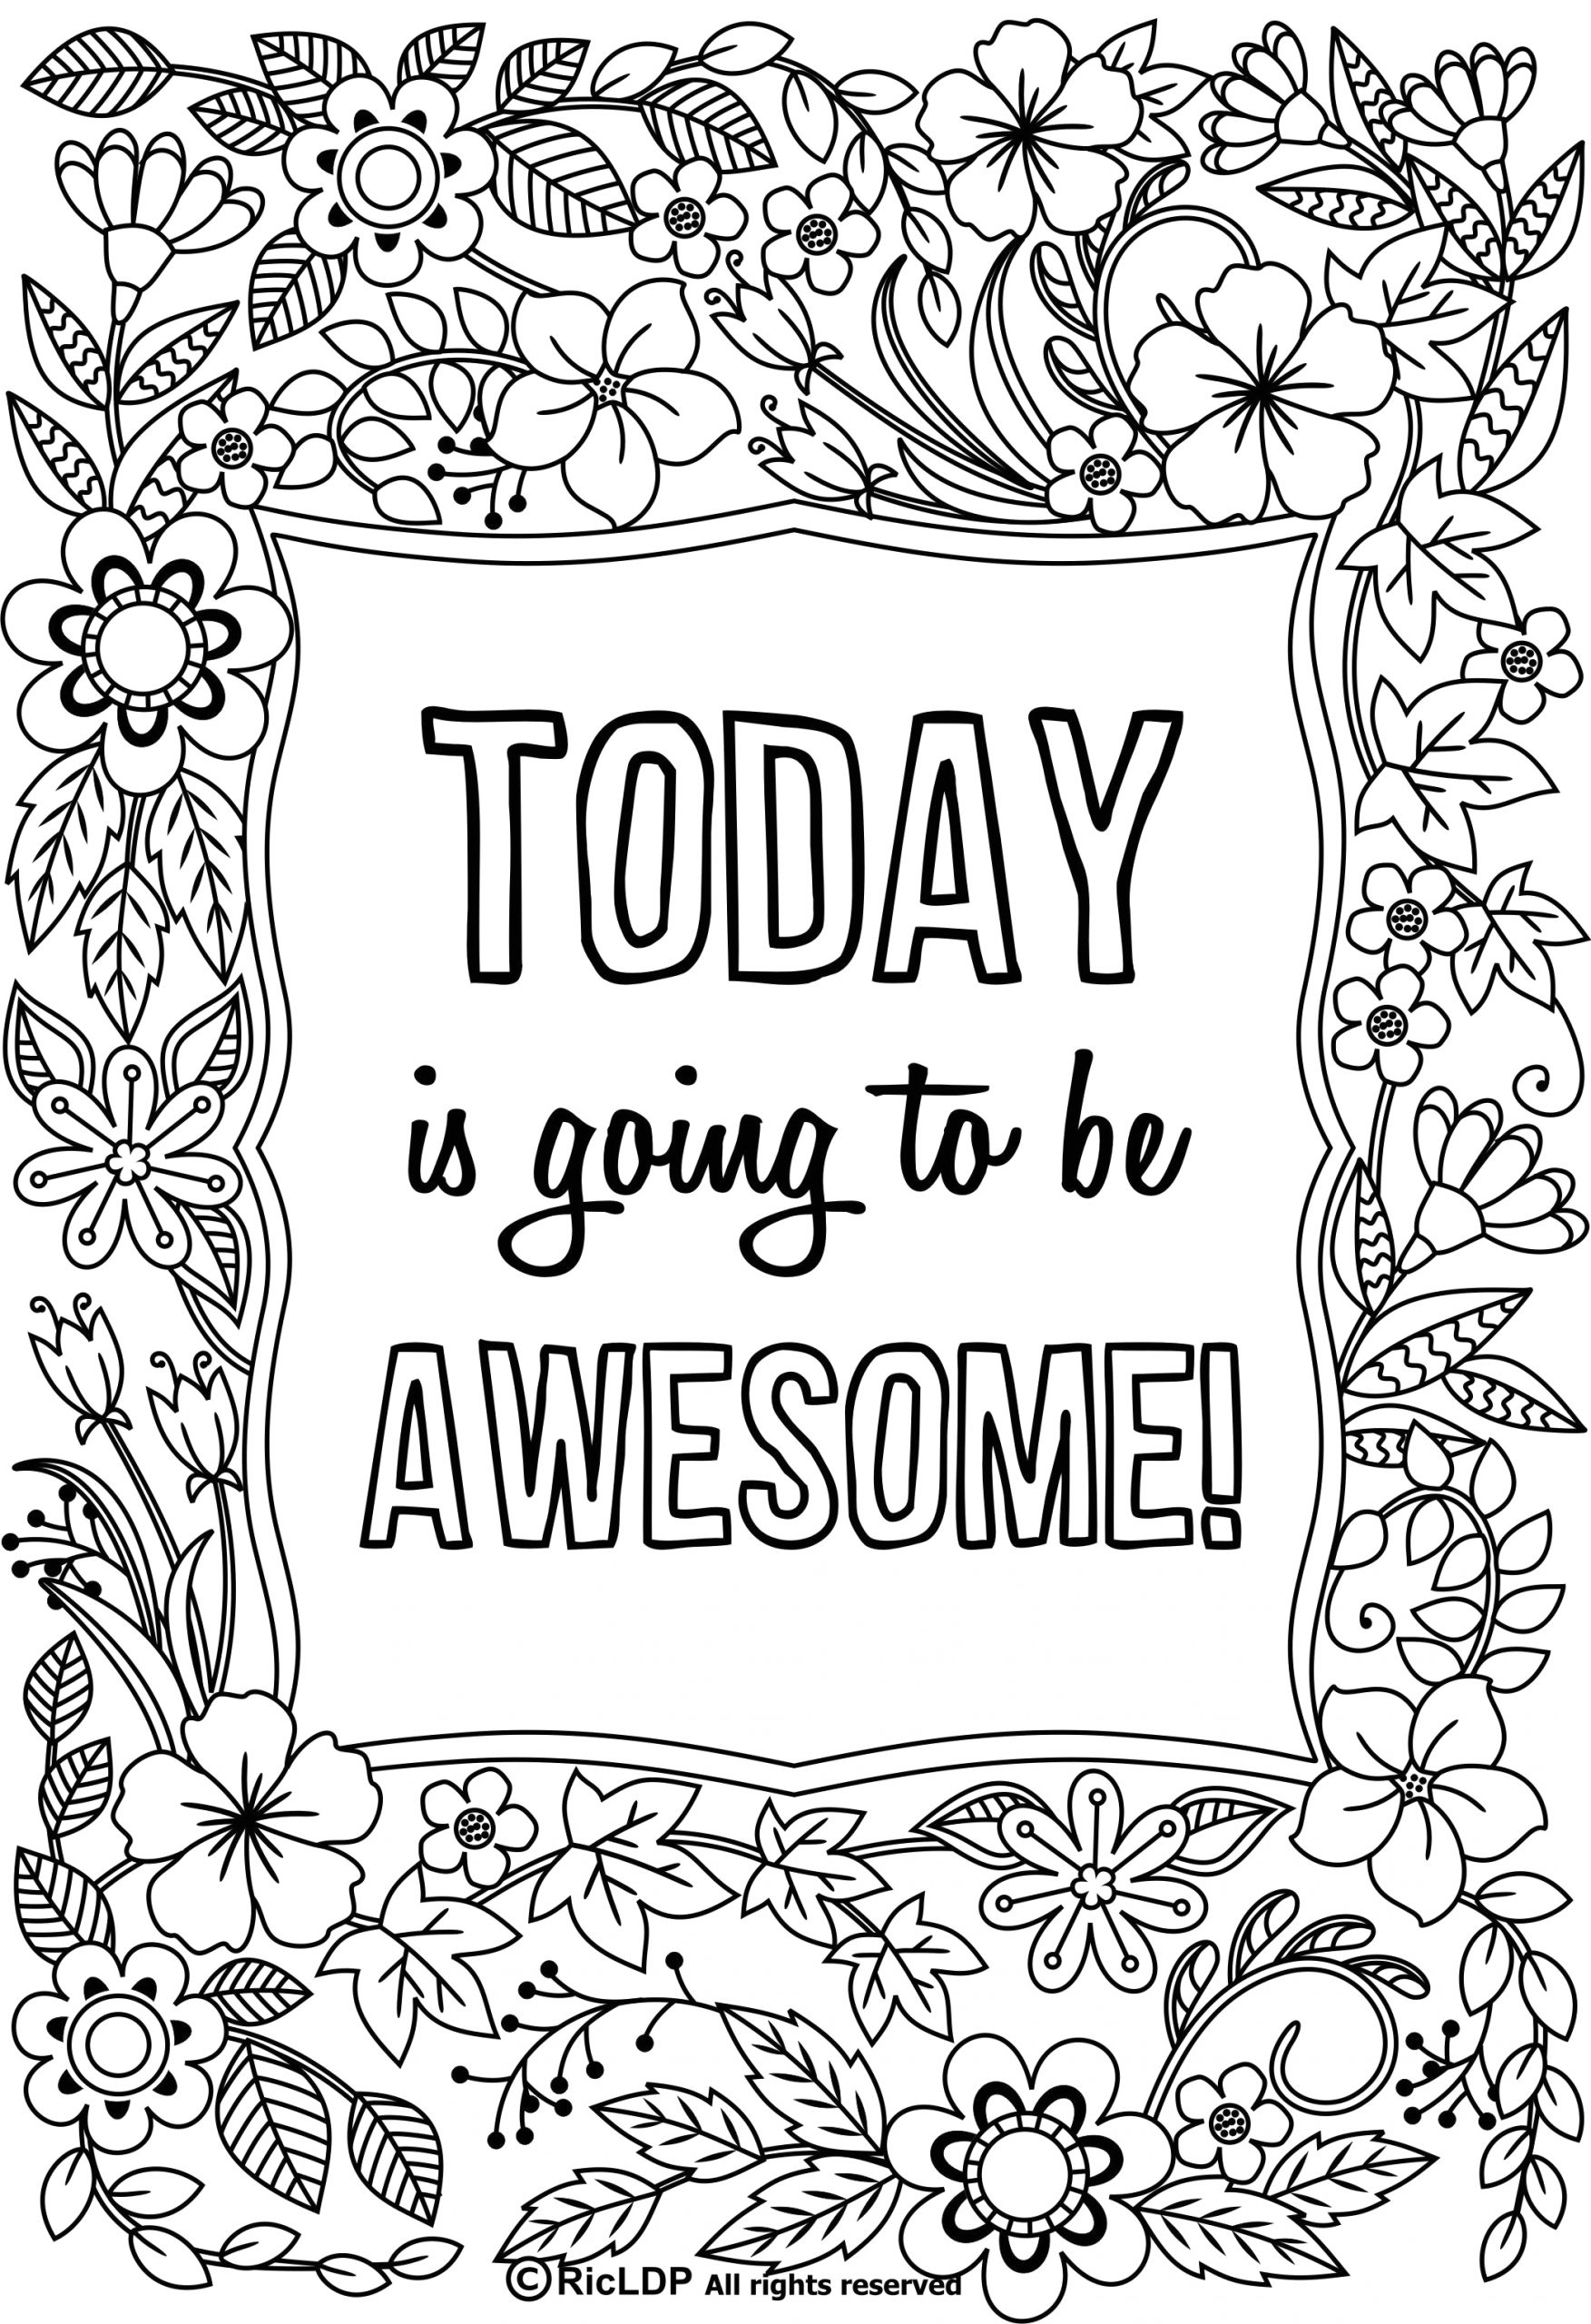 Free Online Coloring Pages for Adults Quotes Pin On Coloring Pages